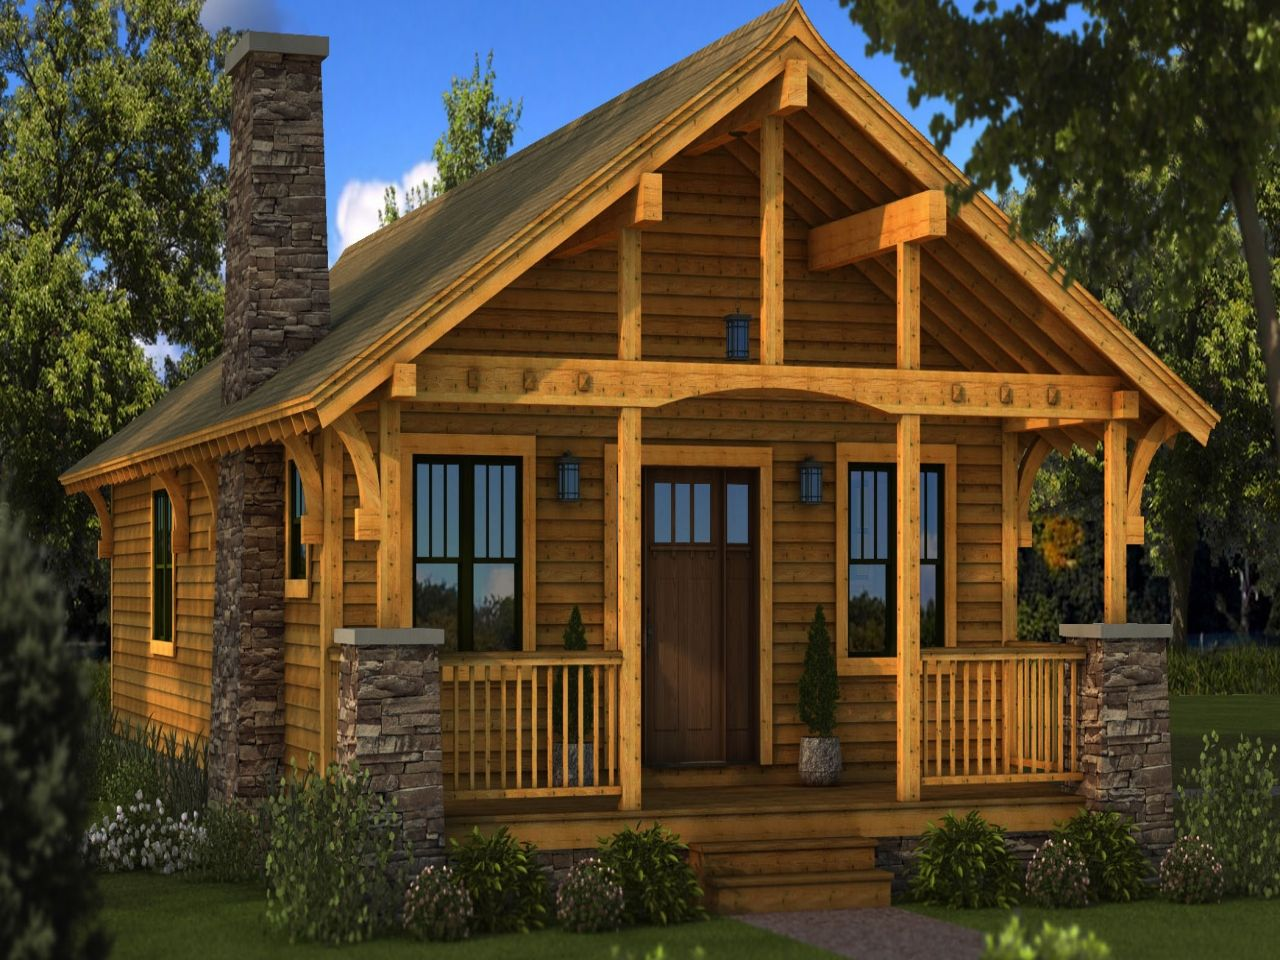 Small log cabin homes plans one story cabin plans for Small river house plans